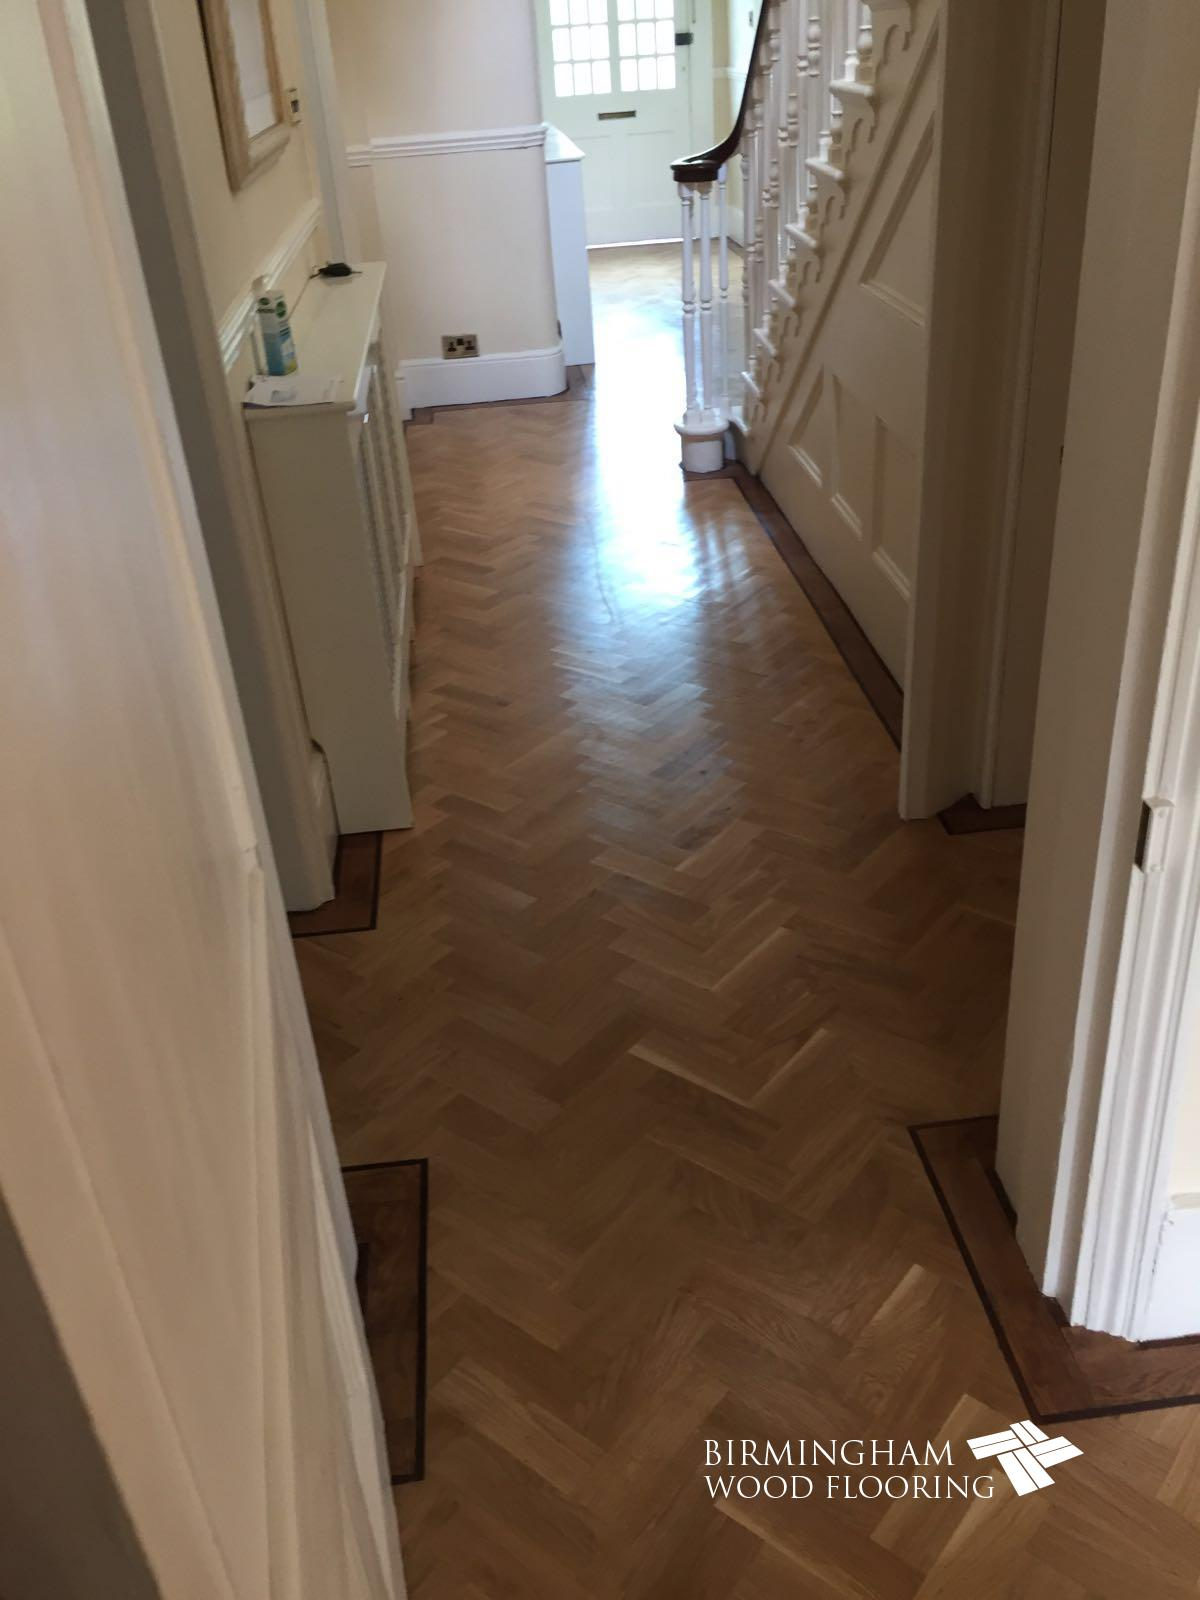 Parquet-floor-with-Wenge-Feature-strip-installed-with-order-stained-medium-oak-6